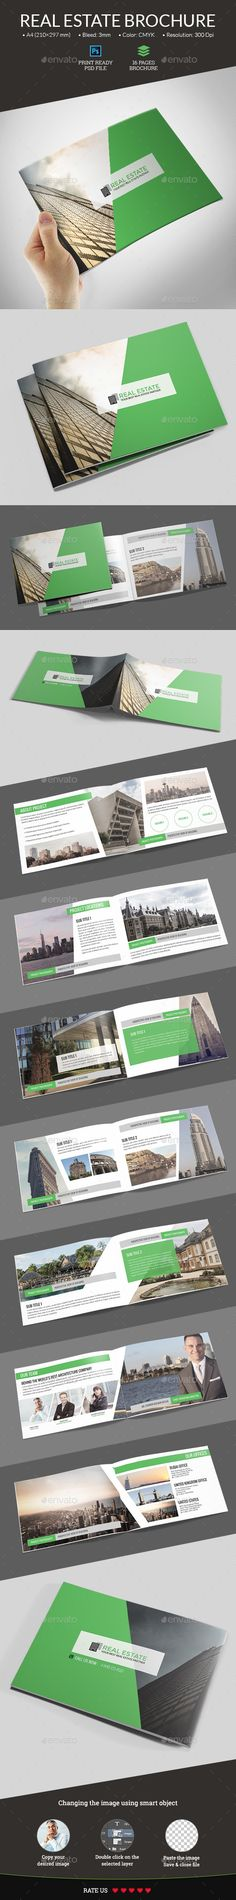 Dream South real estate brochure PSD Layouts \ Brochures - psd brochure design inspiration